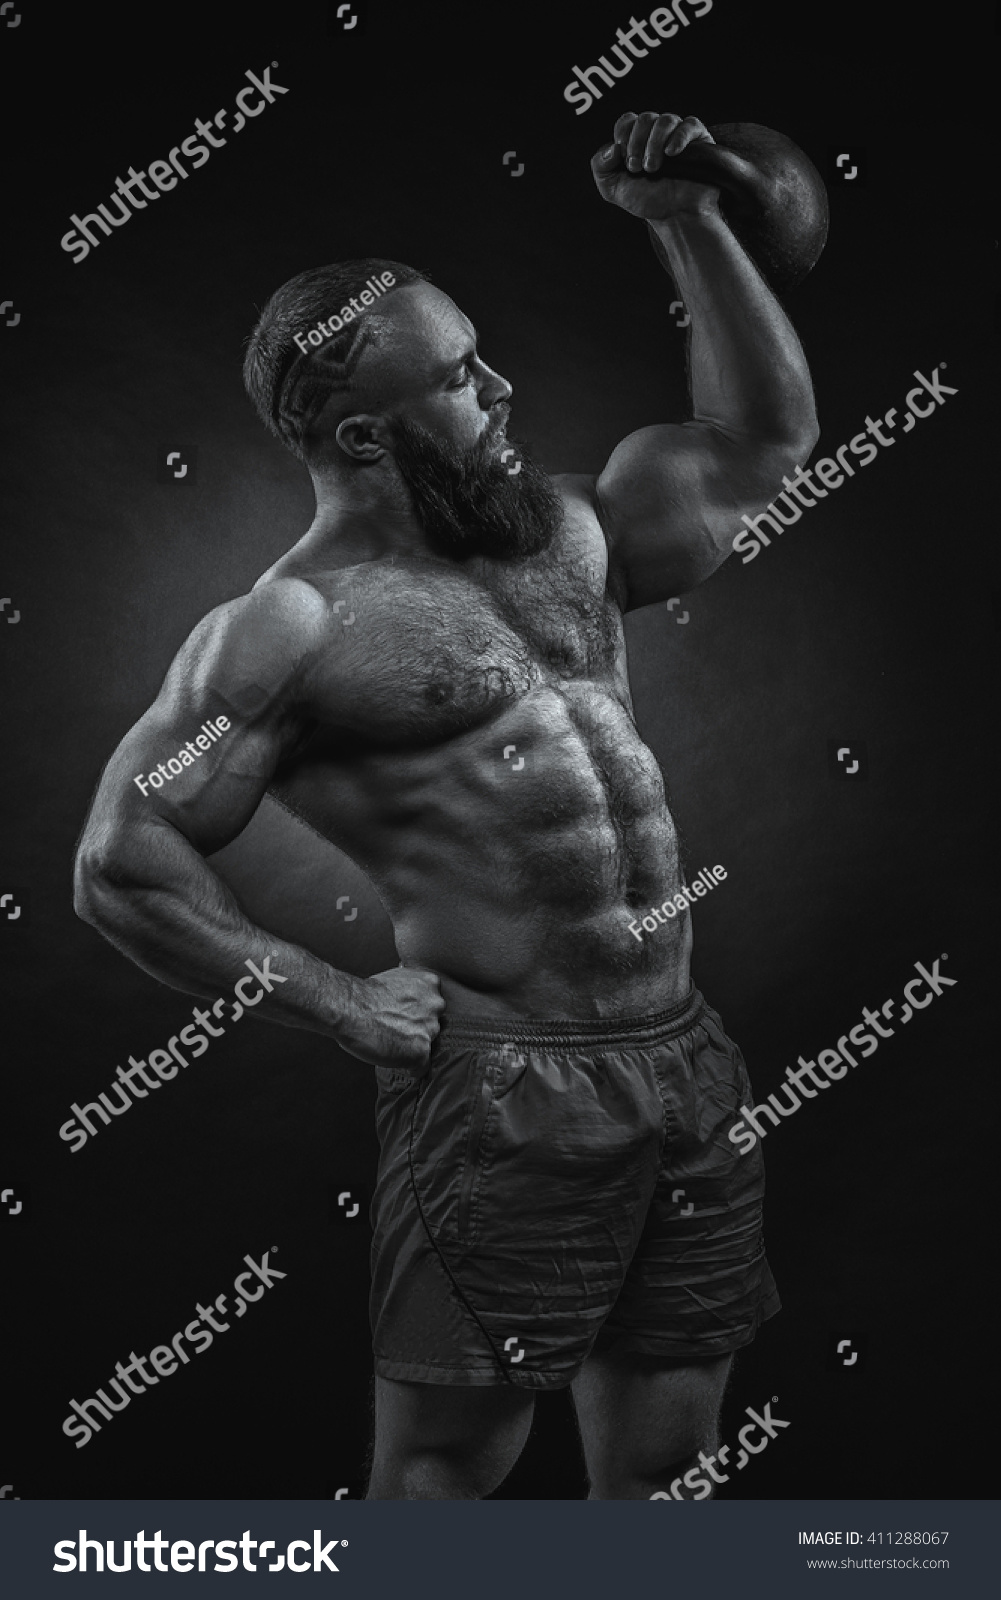 Kettlebell Bodybuilding Royalty Free Bodybuilder With A Beard Lifts A Heavy 411288067